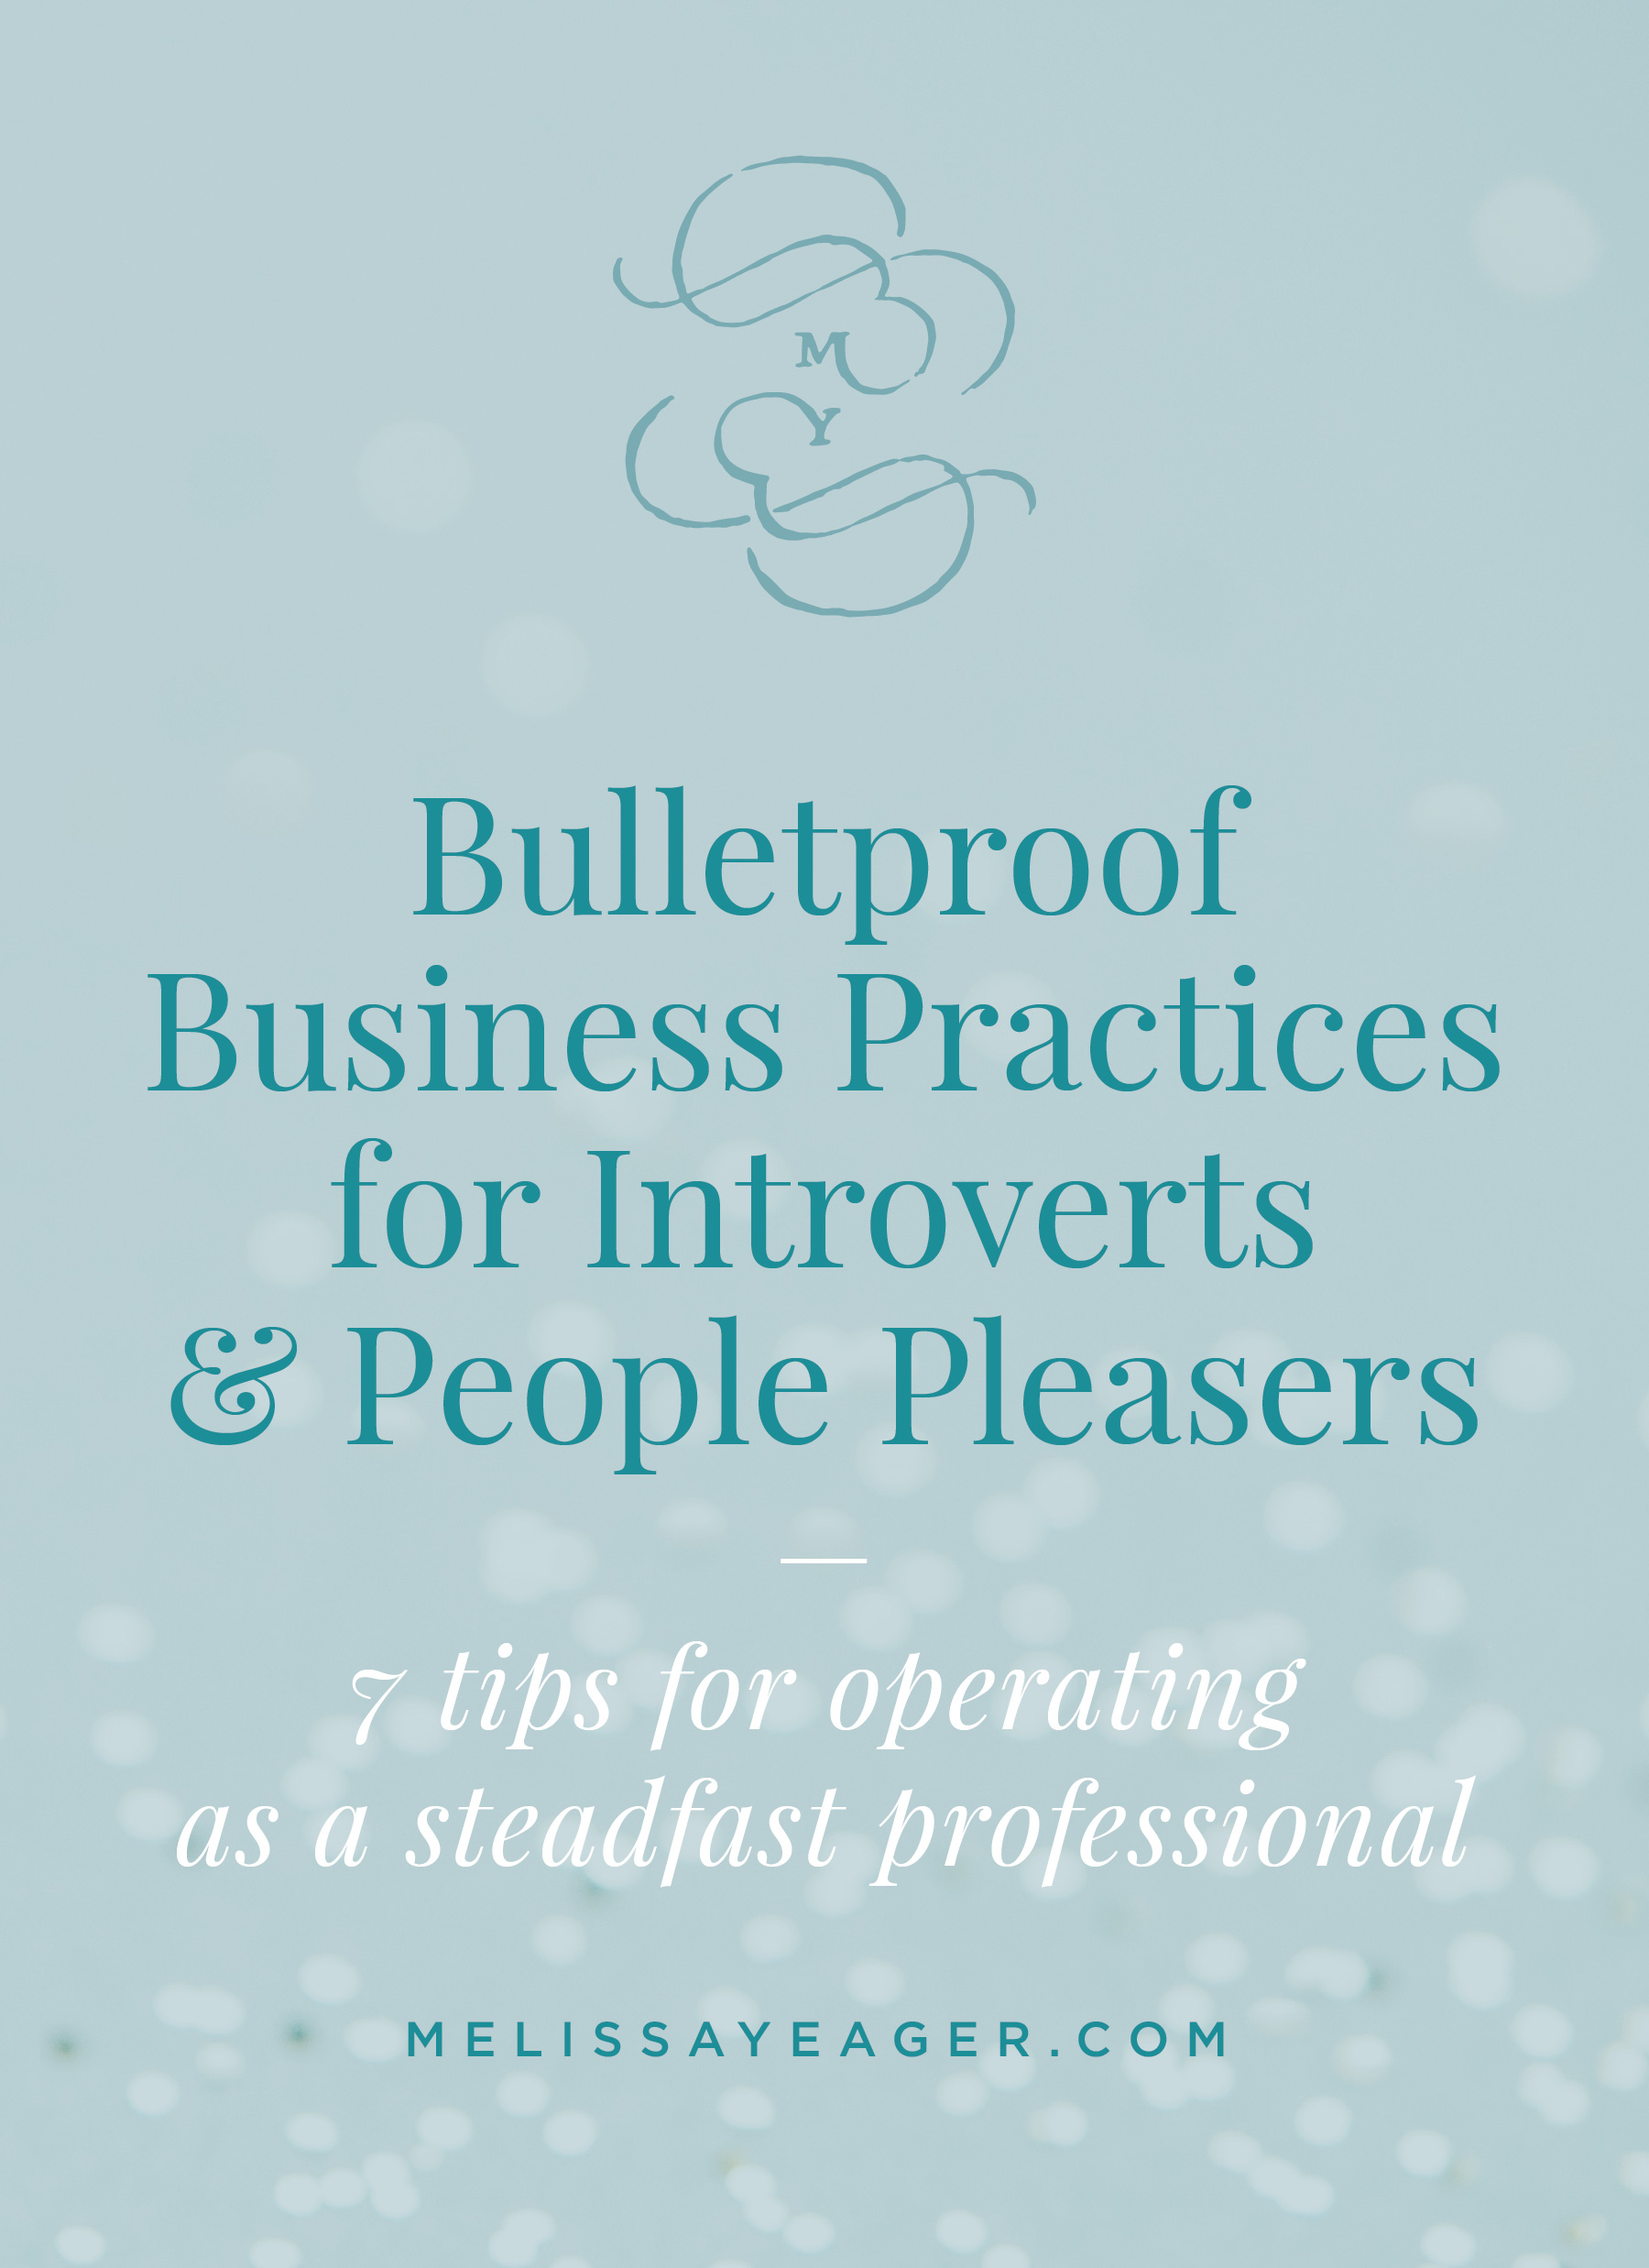 Bulletproof Business Practices for Introverts & People Pleasers - 7 tips for operating as a steadfast professional